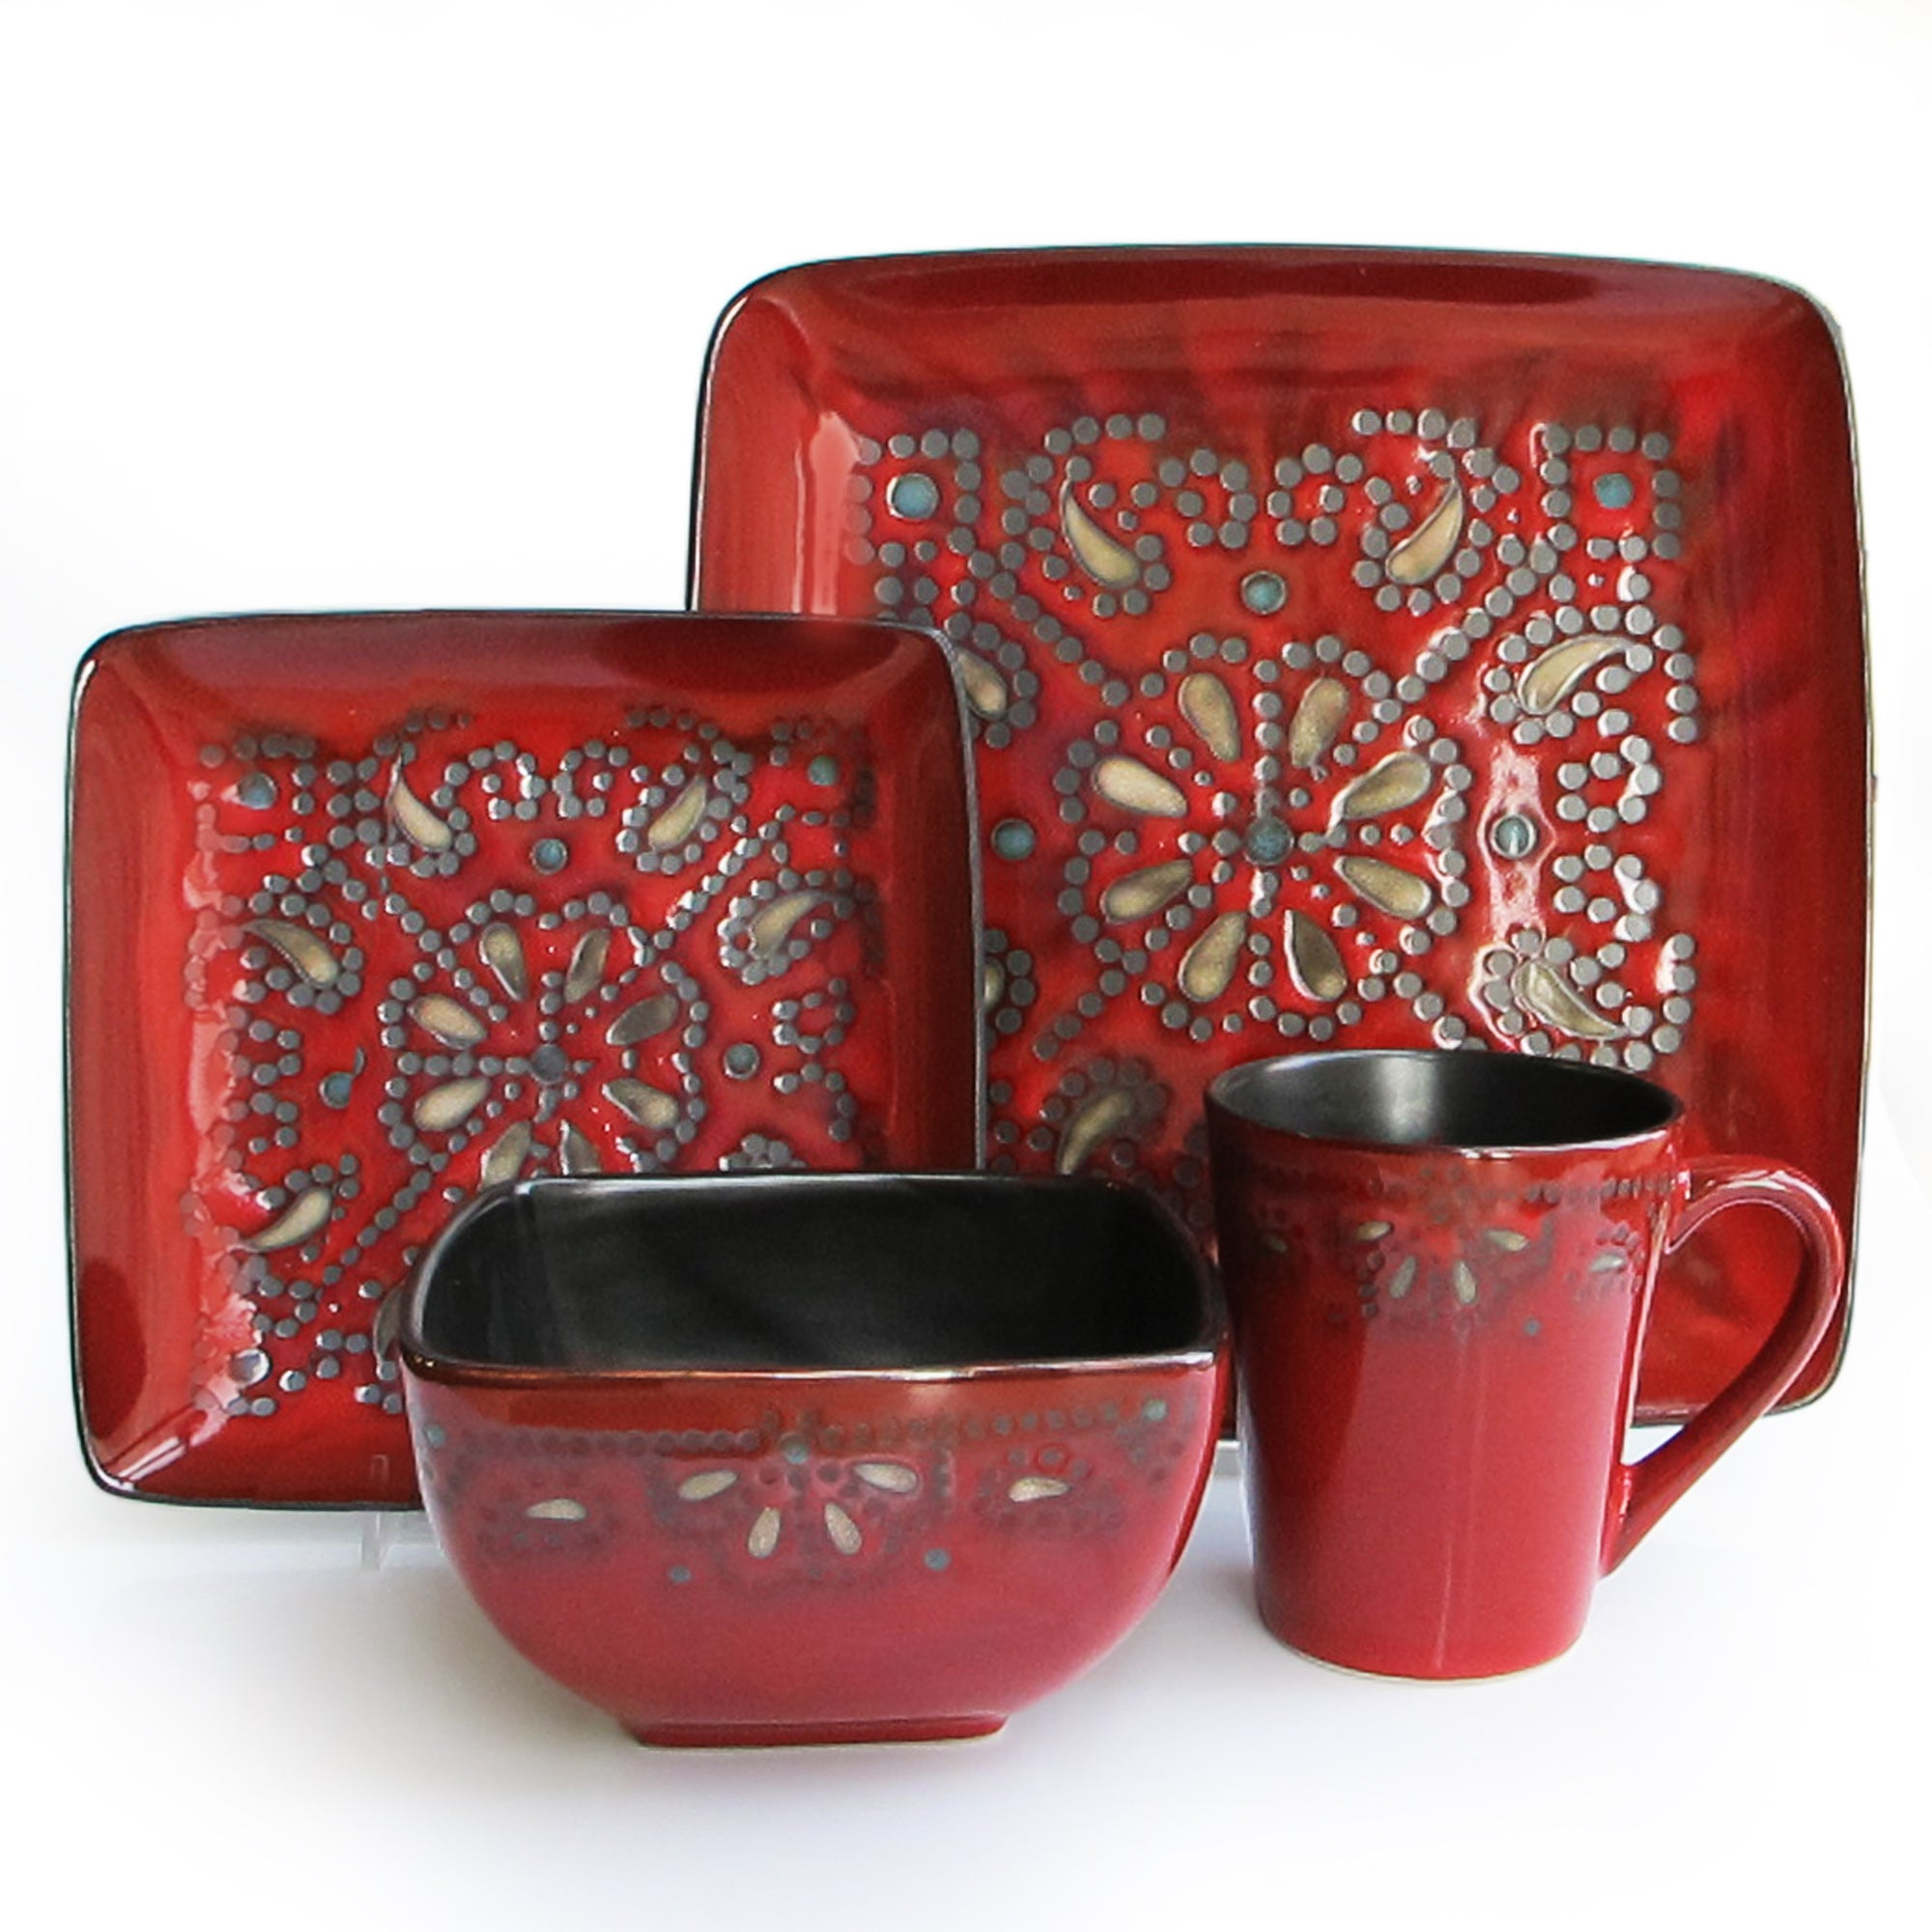 American Atelier Marquee Red 16 Piece Dinnerware Set  sc 1 st  eBay & American Atelier Marquee Red 16 Piece Dinnerware Set | eBay